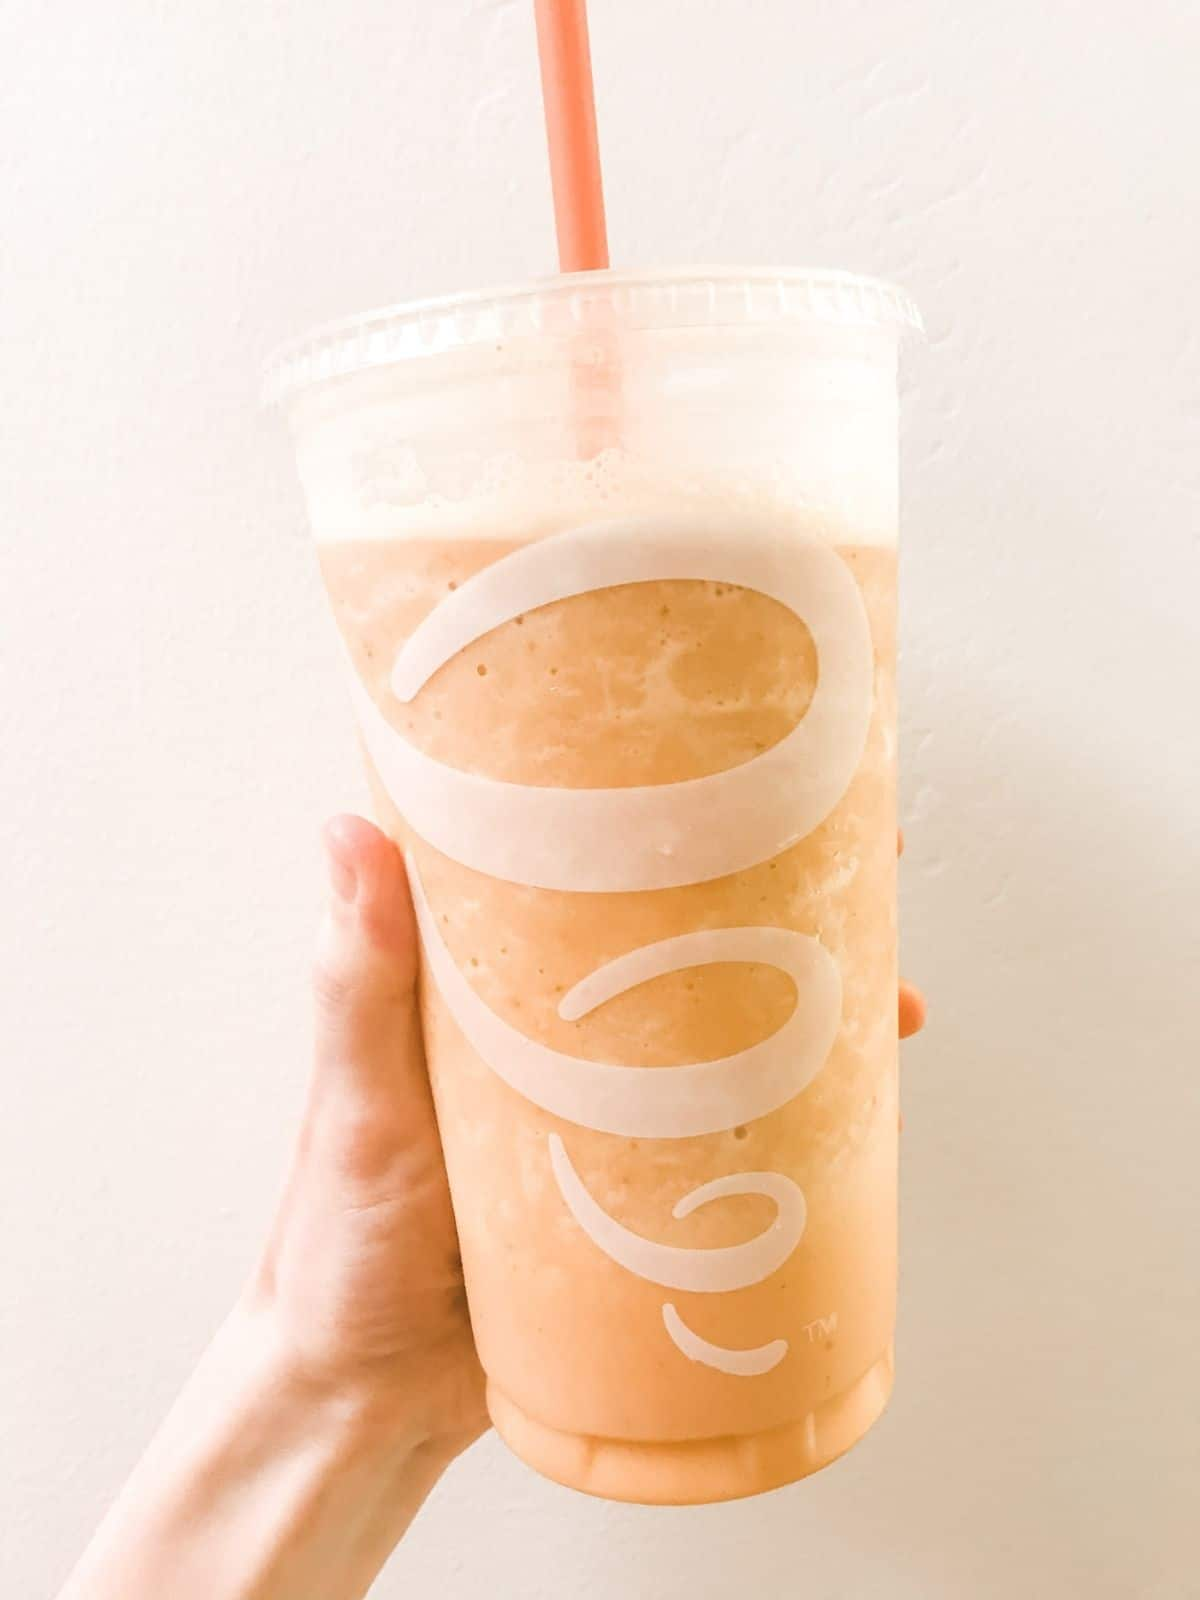 pumpkin smash plant based smoothie in a jamba juice cup with an orange straw, being held up against a light background